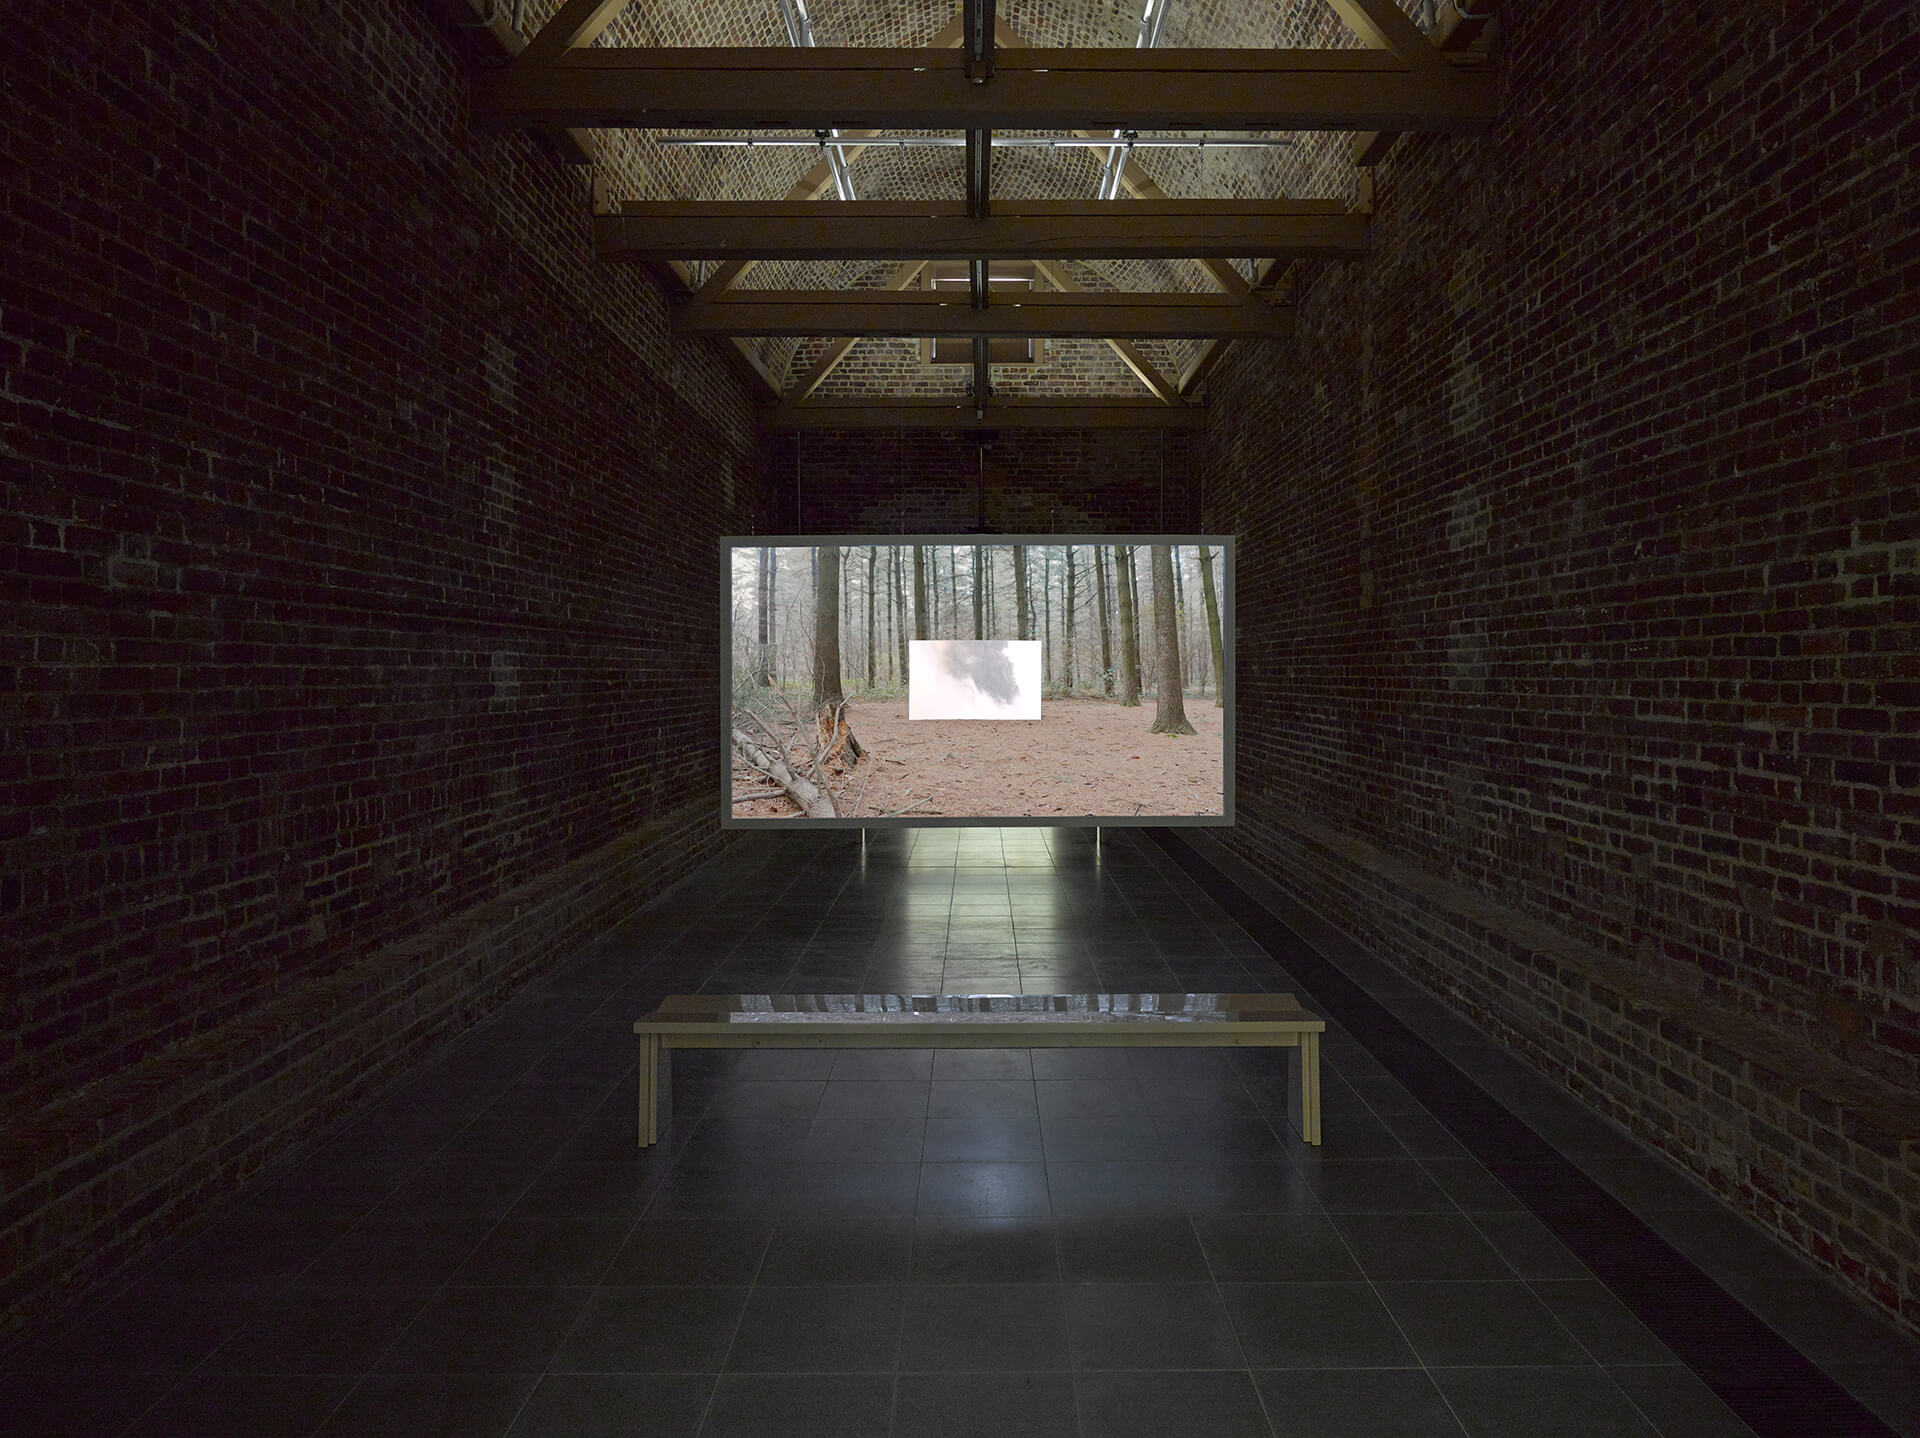 Formafantasma, Cambio (Installation view 6, Serpentine Galleries, 4 March – 17 May 2020)| Cambio by Formafantasma at the Serpentine Gallery | STIRworld